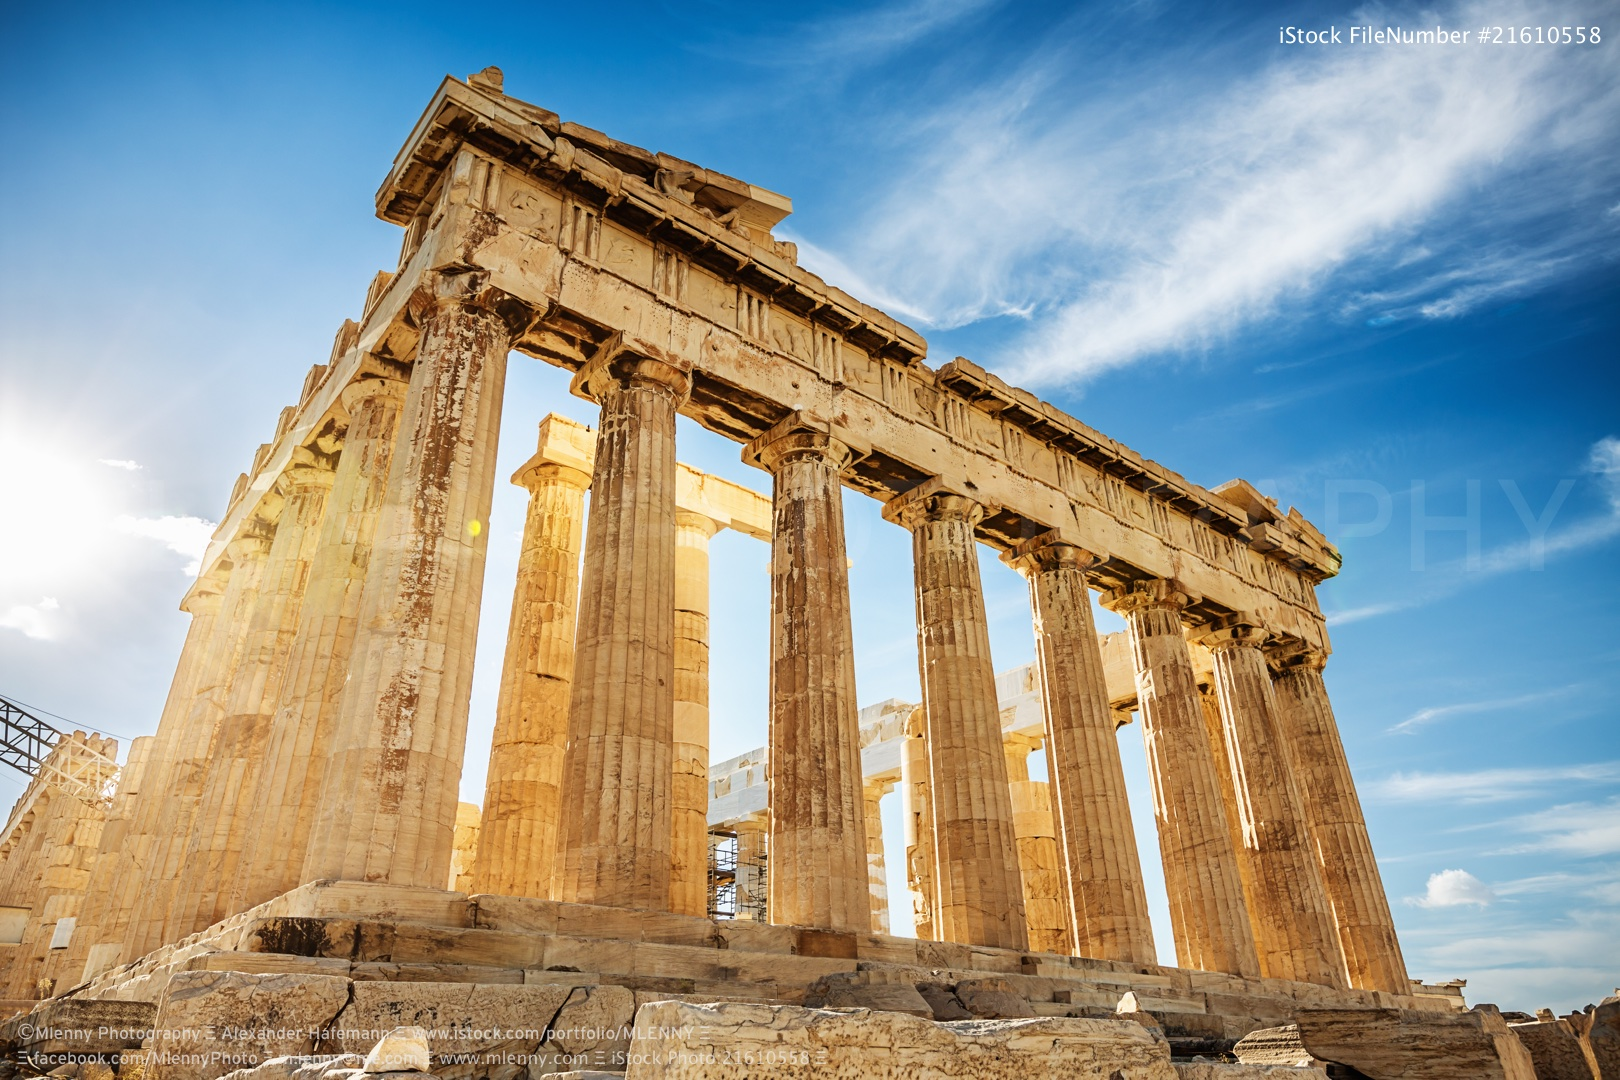 Parthenon Acropolis, Athens, Greece